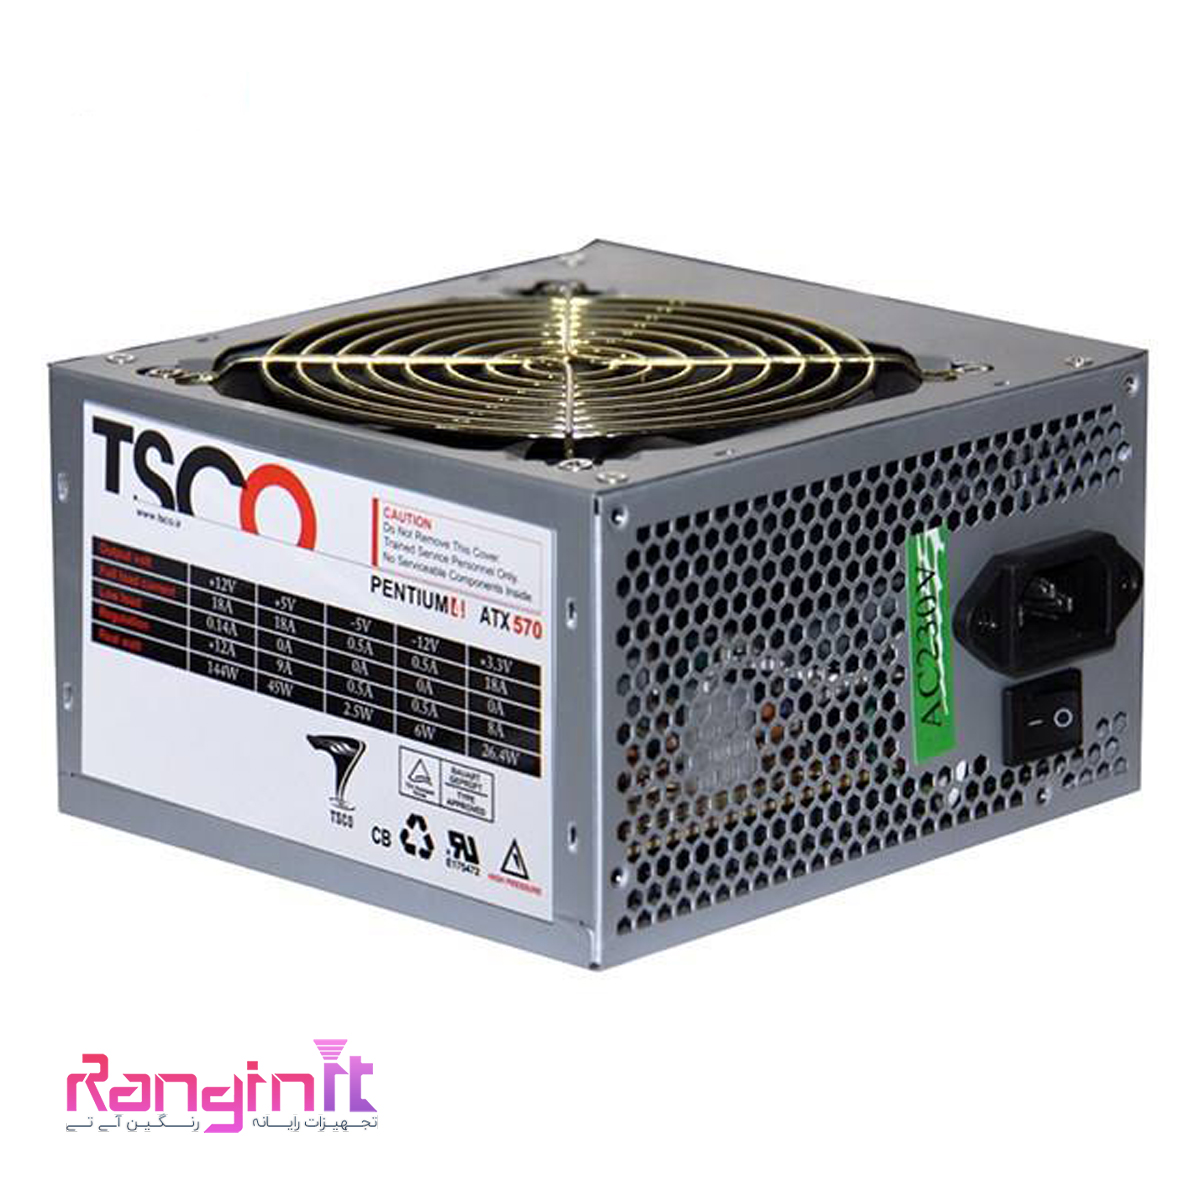 TSCO TP 570W Computer Power Supply